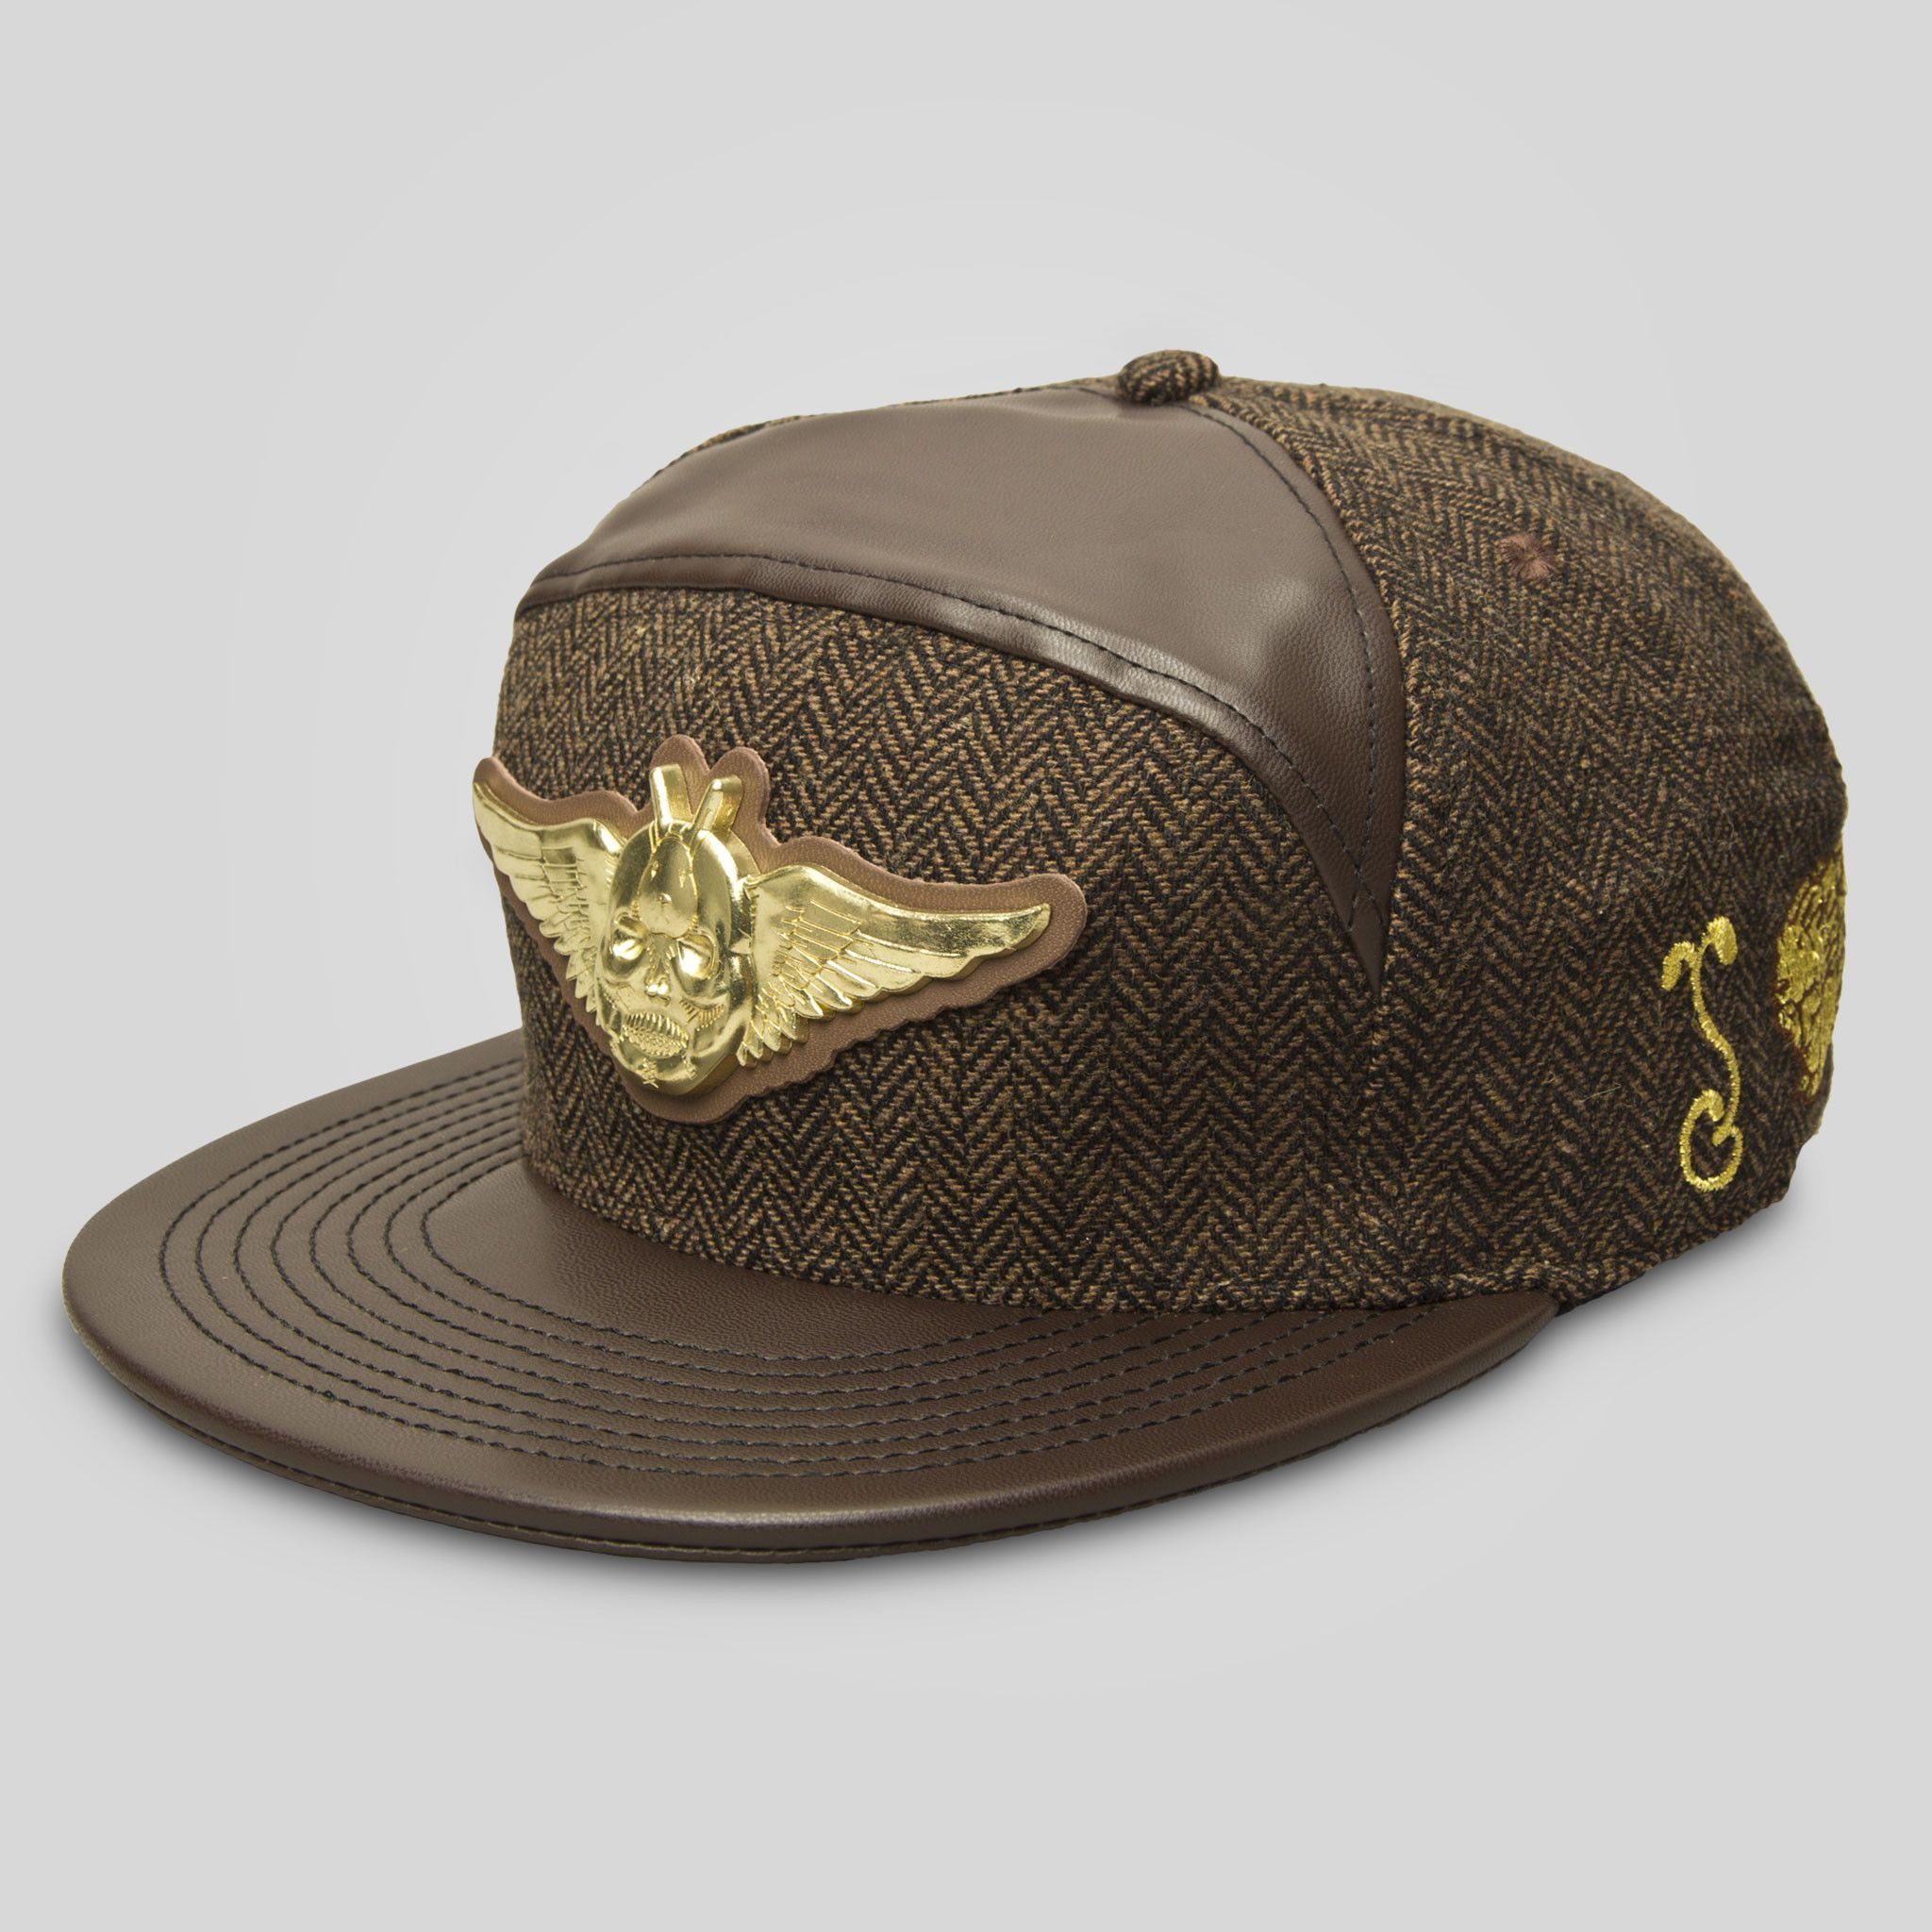 acf4ffec39de2 Grassroots California and Jeremy Fish have teamed up to create this unique  fitted cap - Brown